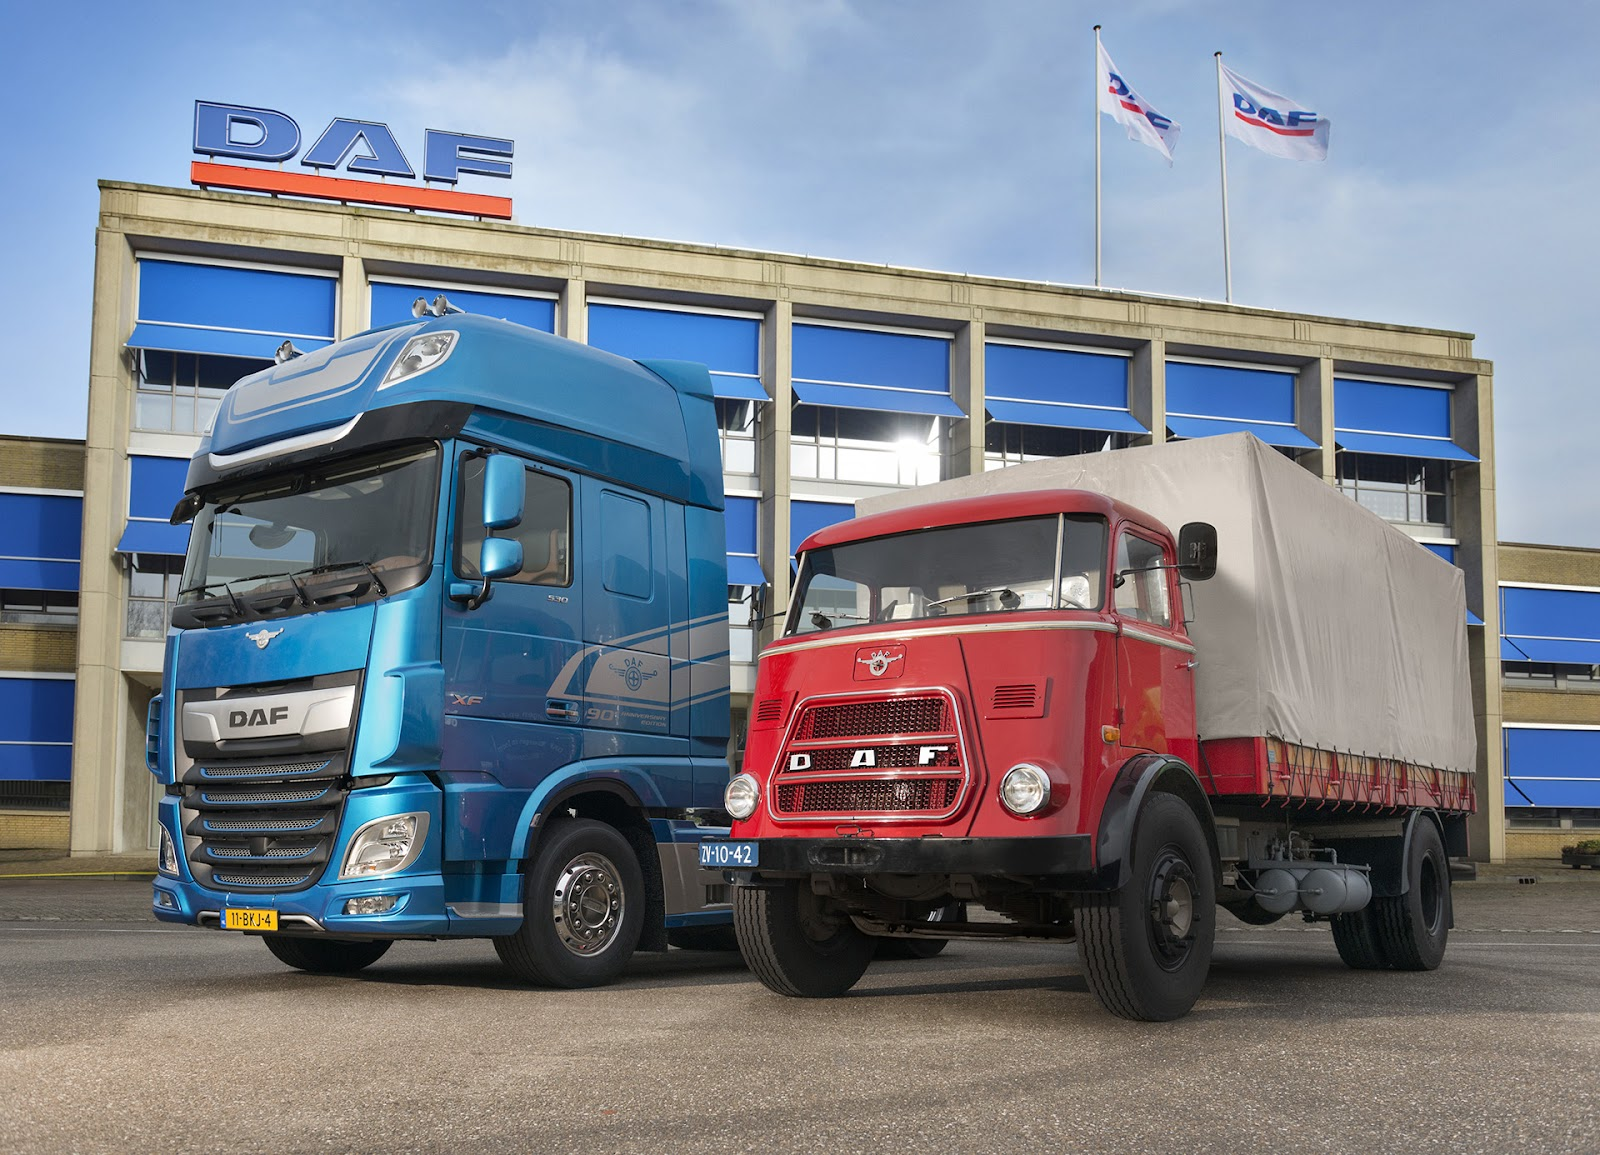 90-Years-of-DAF-DAF-New-XF-and-DAF-A1800